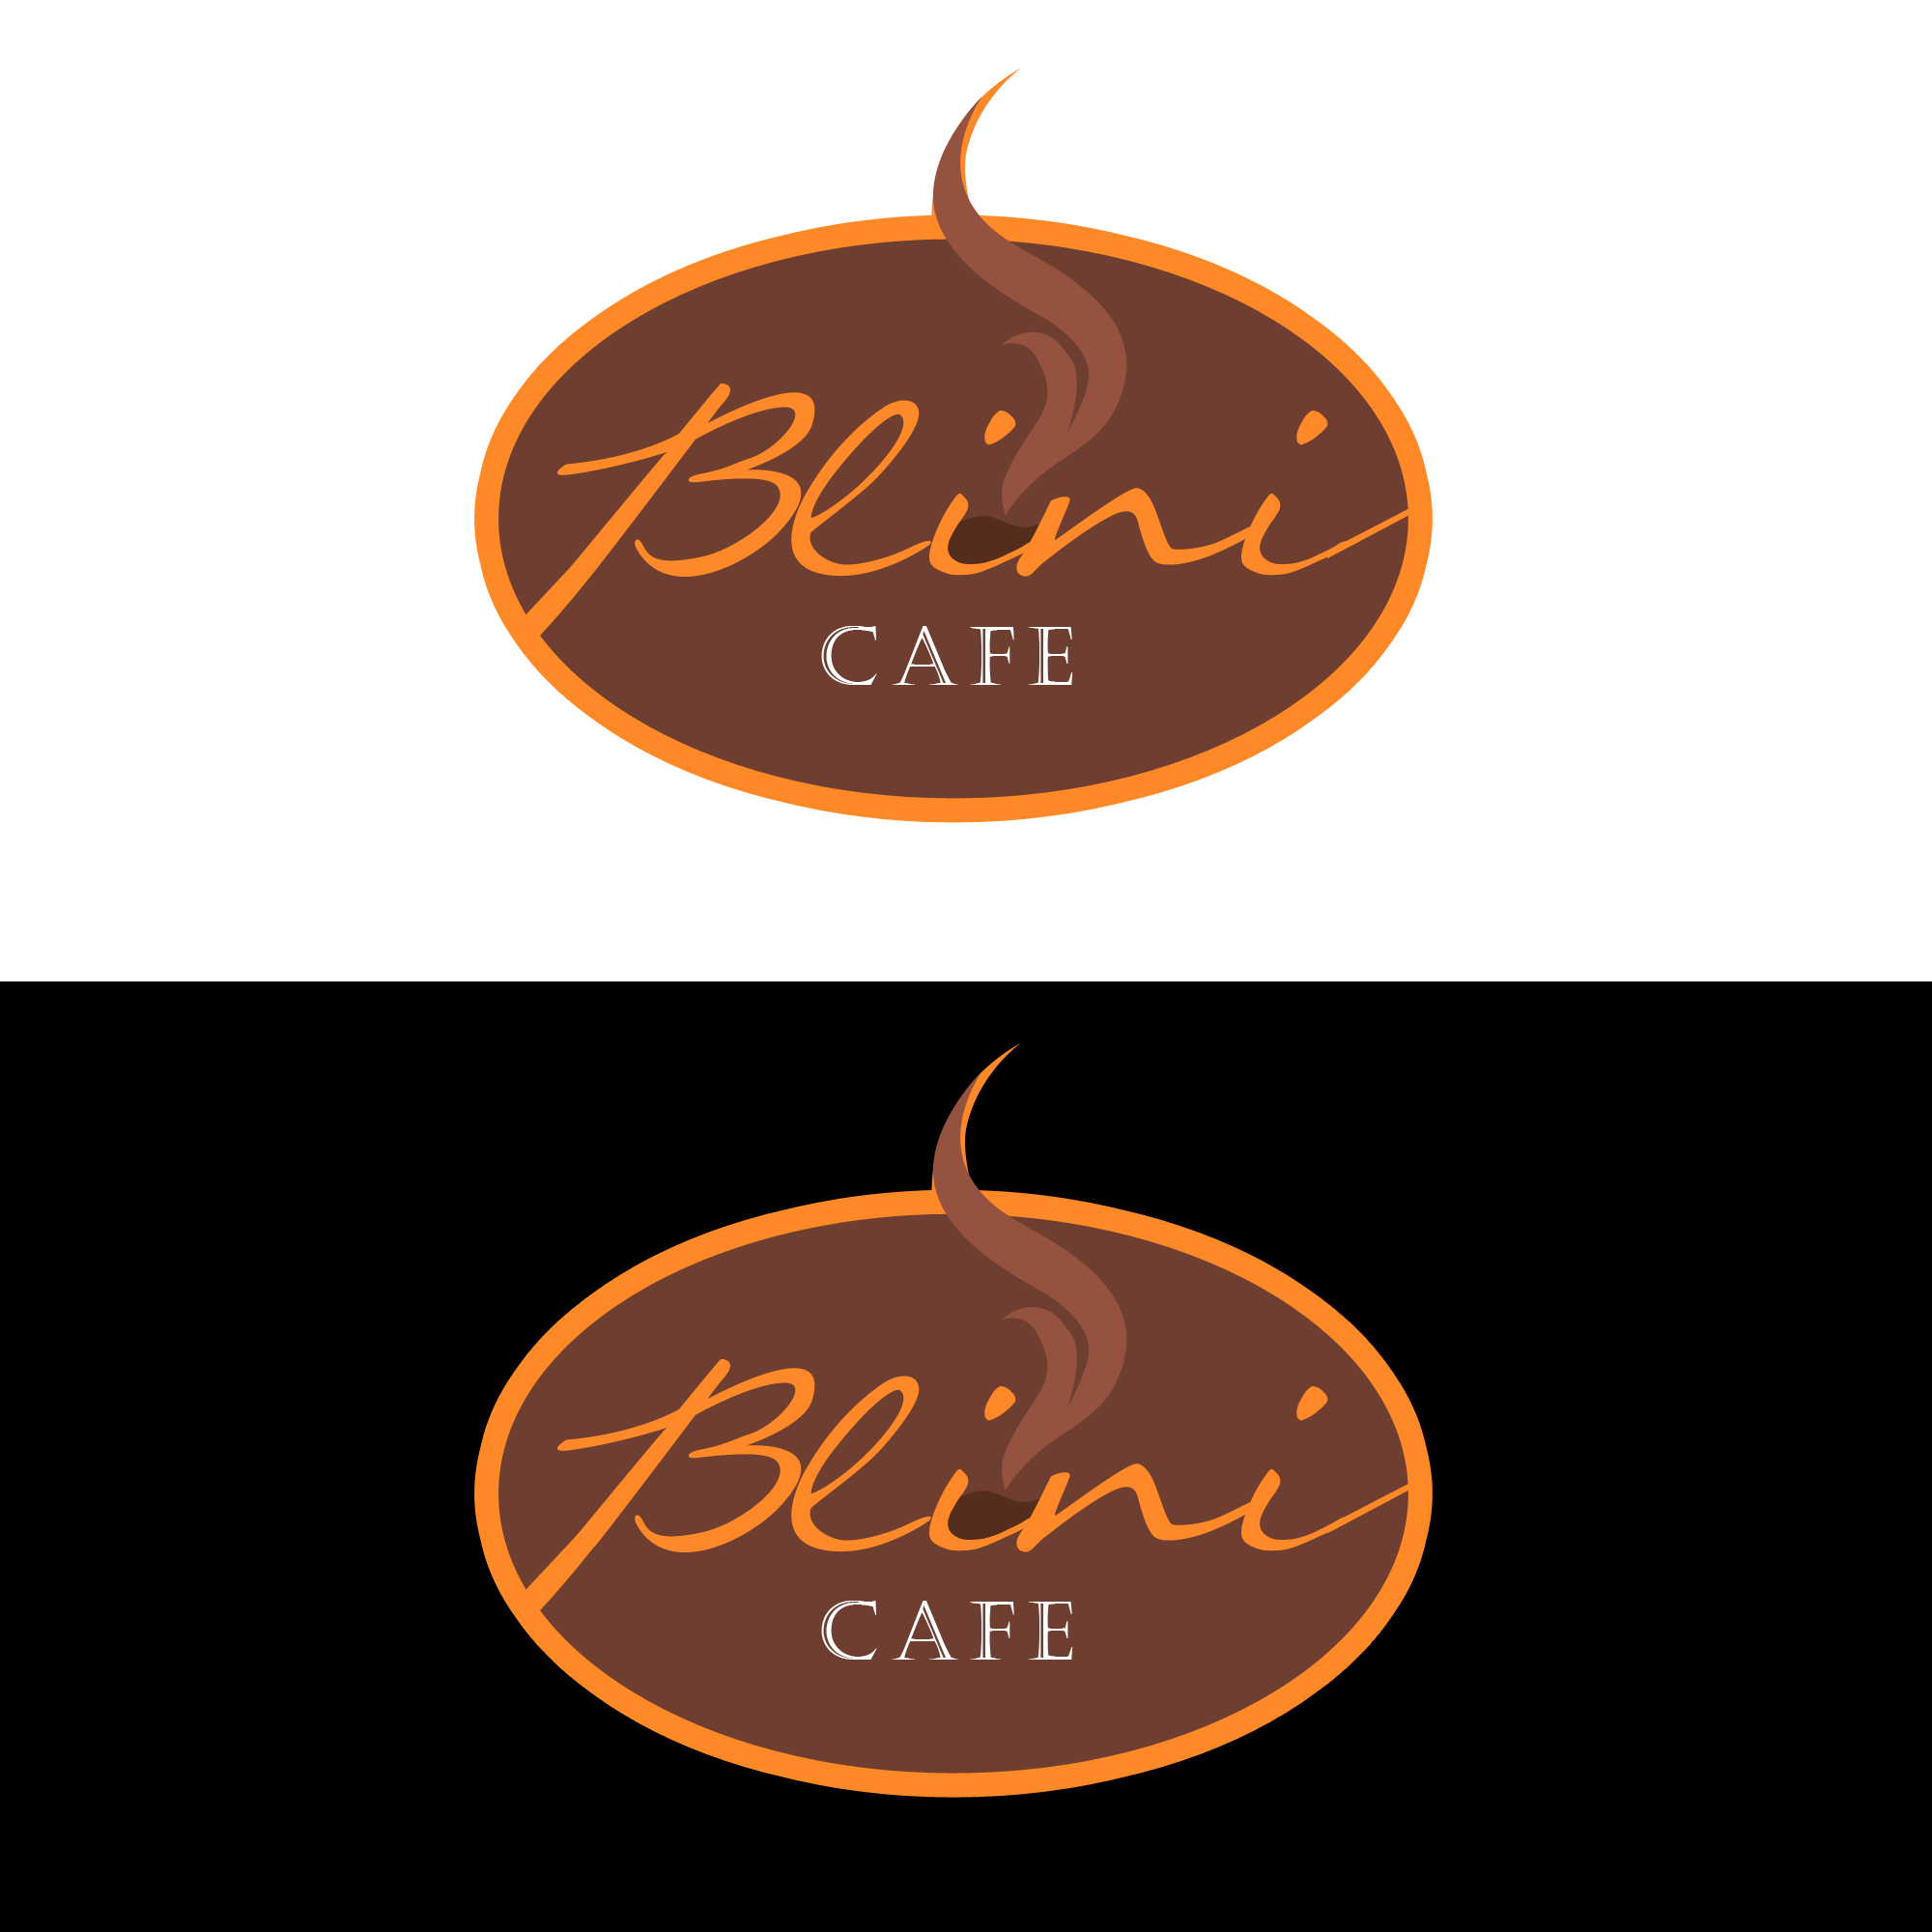 Logo Design by Kenneth Joel - Entry No. 6 in the Logo Design Contest Creative Logo Design for Blinì.